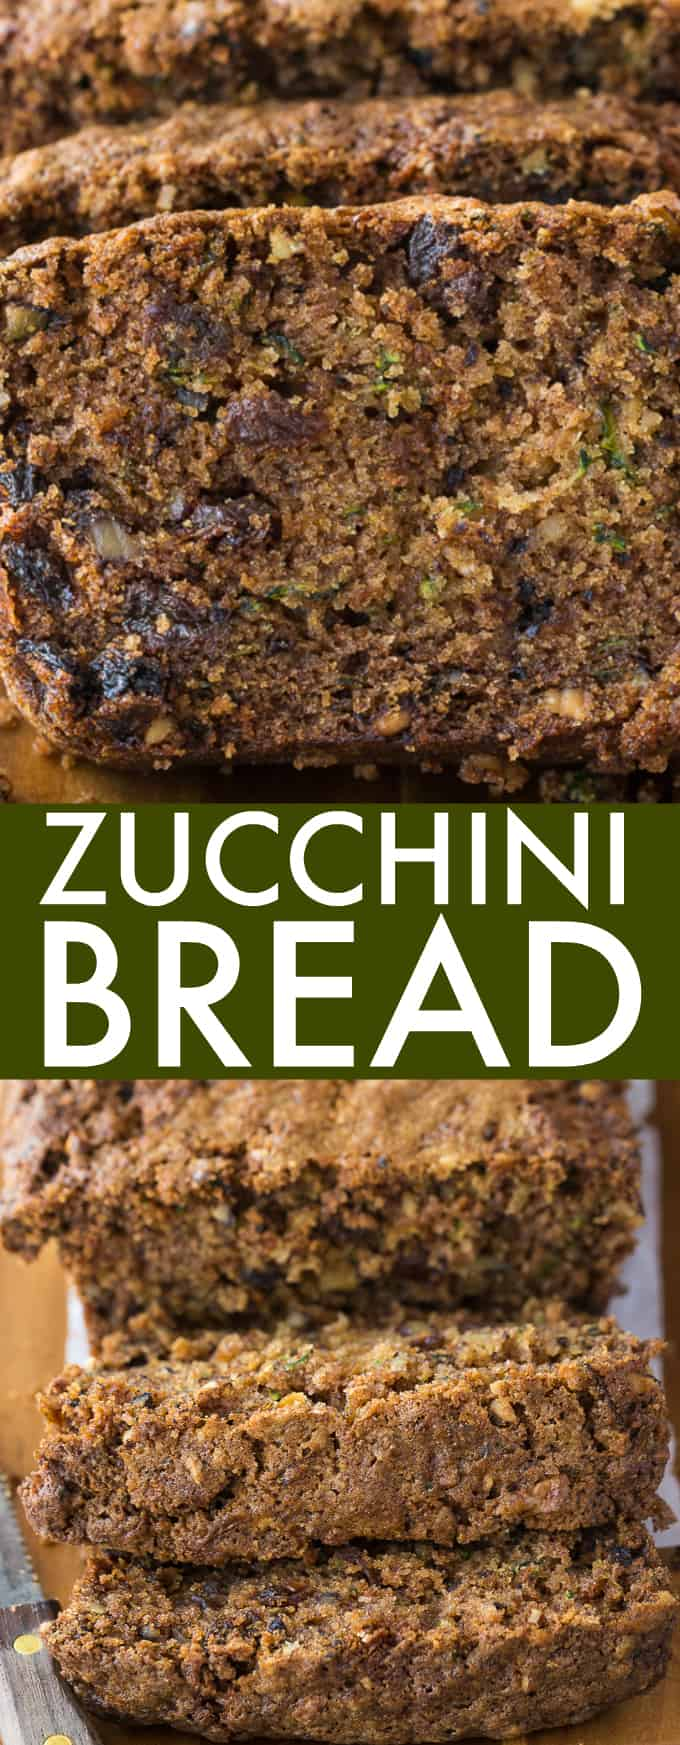 Zucchini Bread - Moist, sweet and delicious. My grandma's recipe is the best zucchini bread recipe ever!